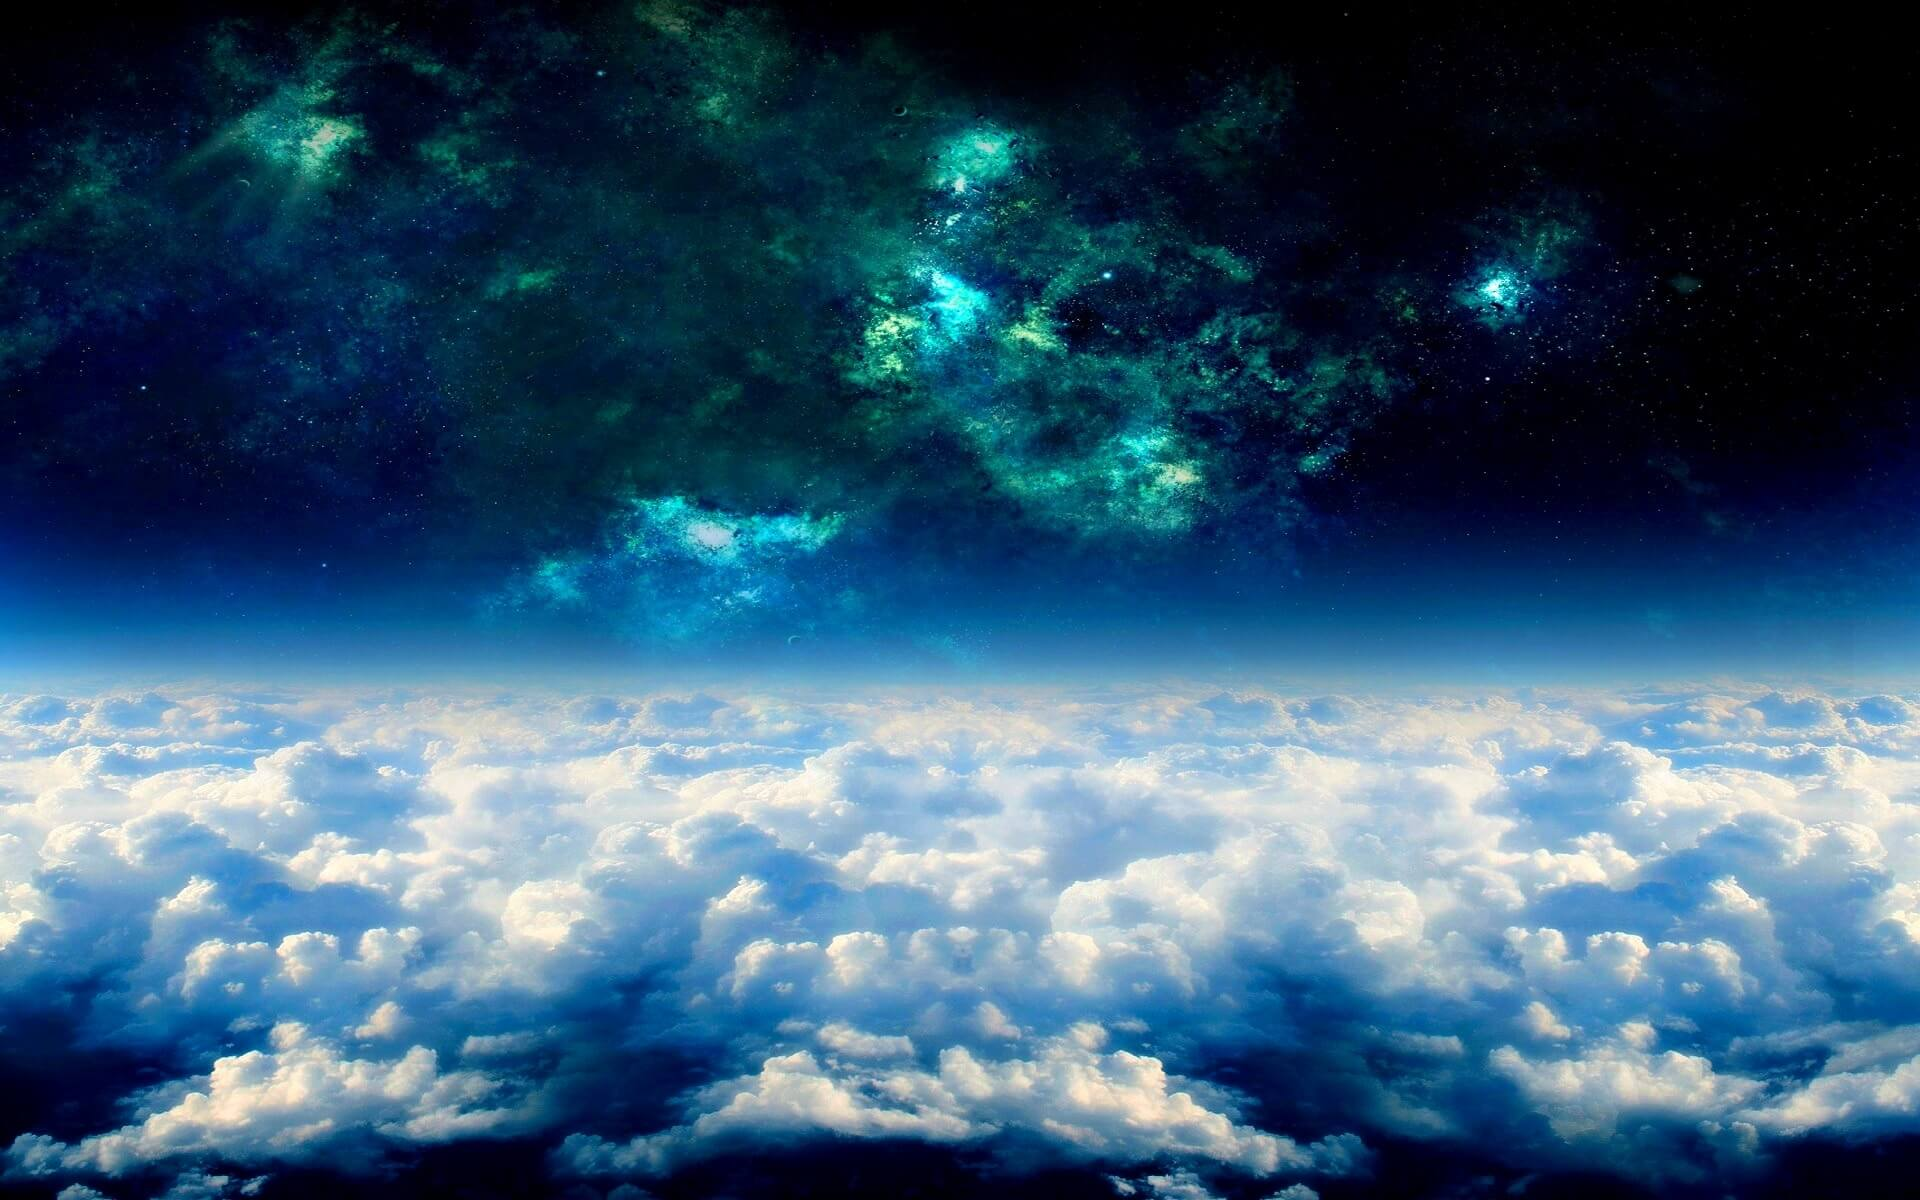 Wallpaper Cloud Posted By Christopher Simpson